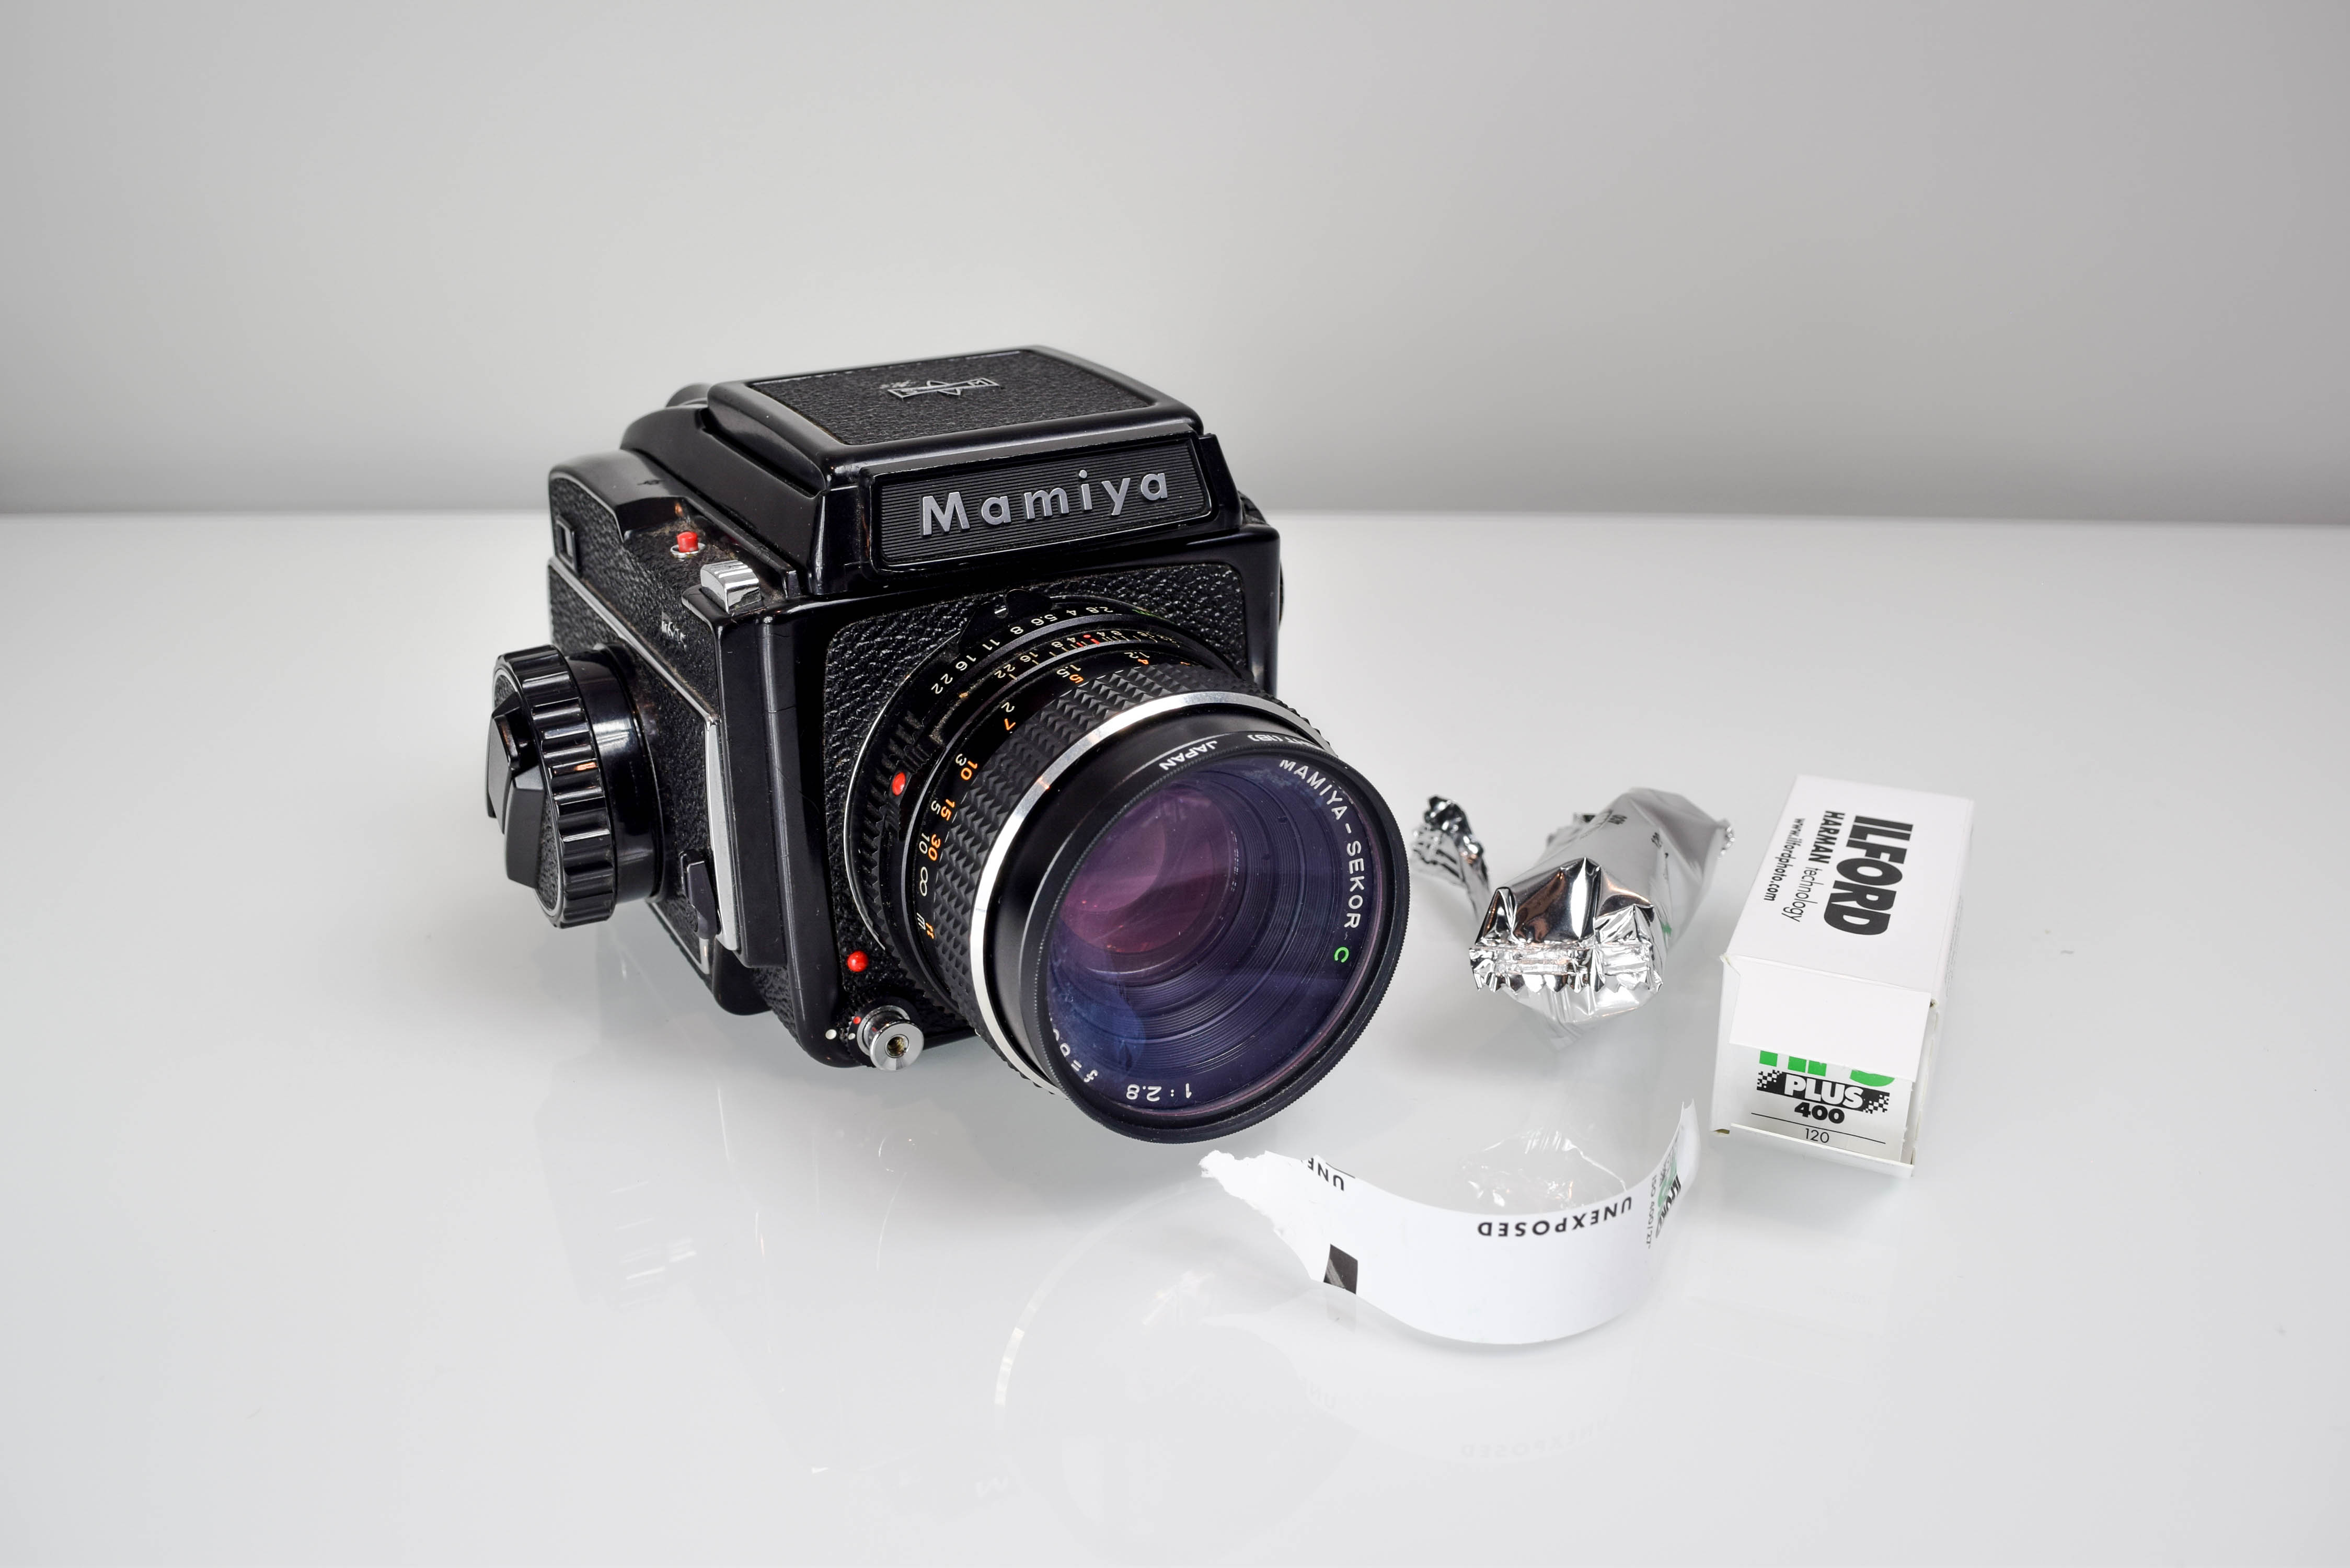 Go Shoot - How to Load 120mm Film into Your Mamiya M645 - Film Photography - Filtergrade